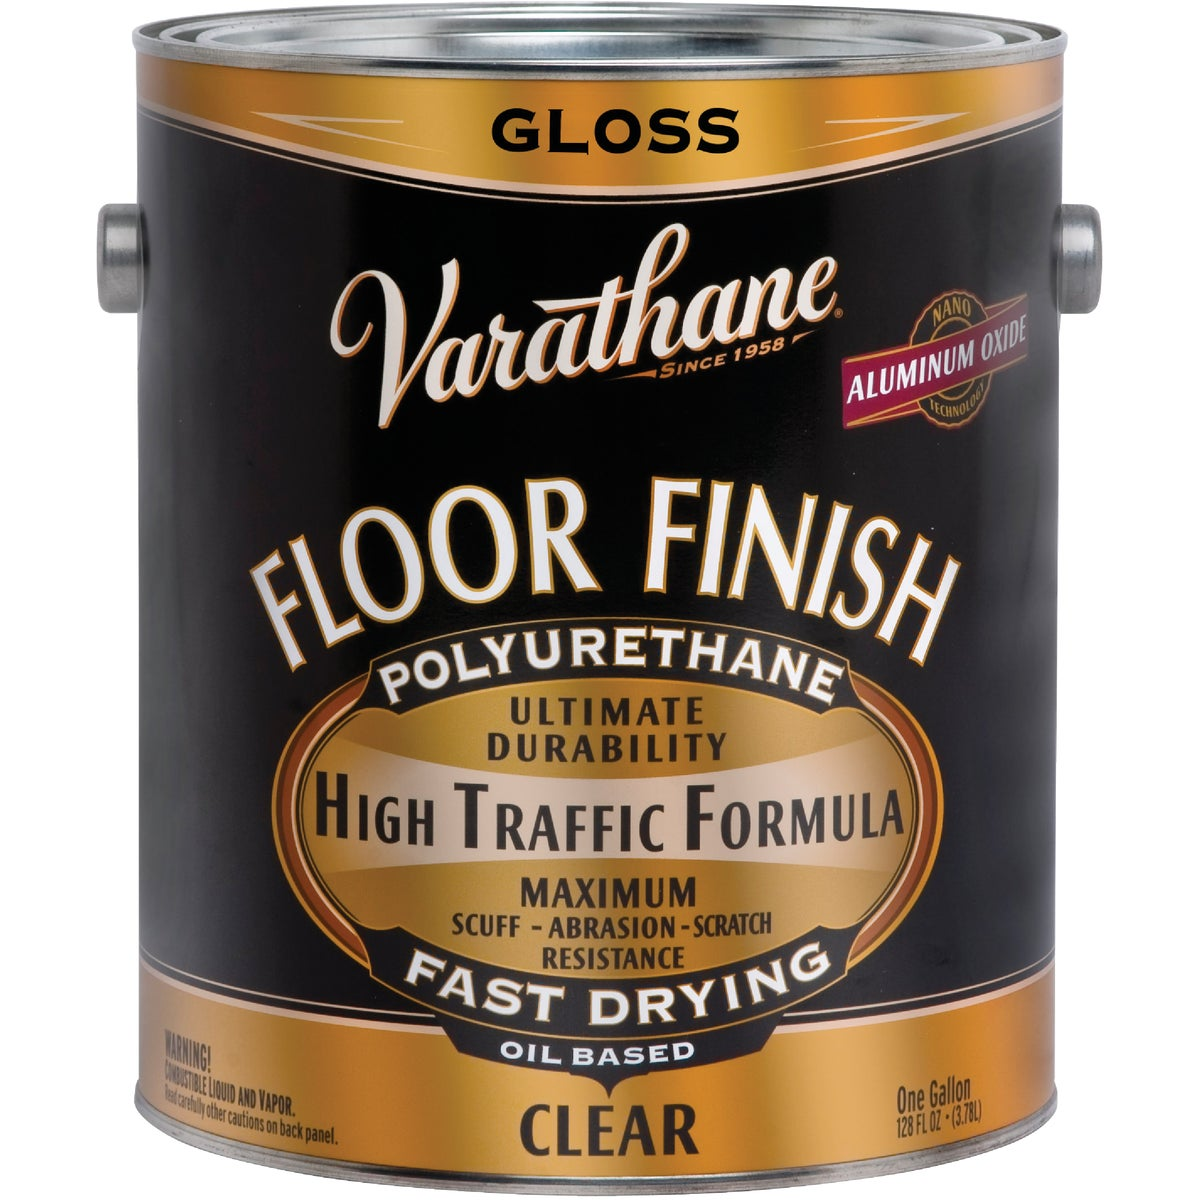 INT GLOSS FLOOR FINISH - 130031 by Rustoleum